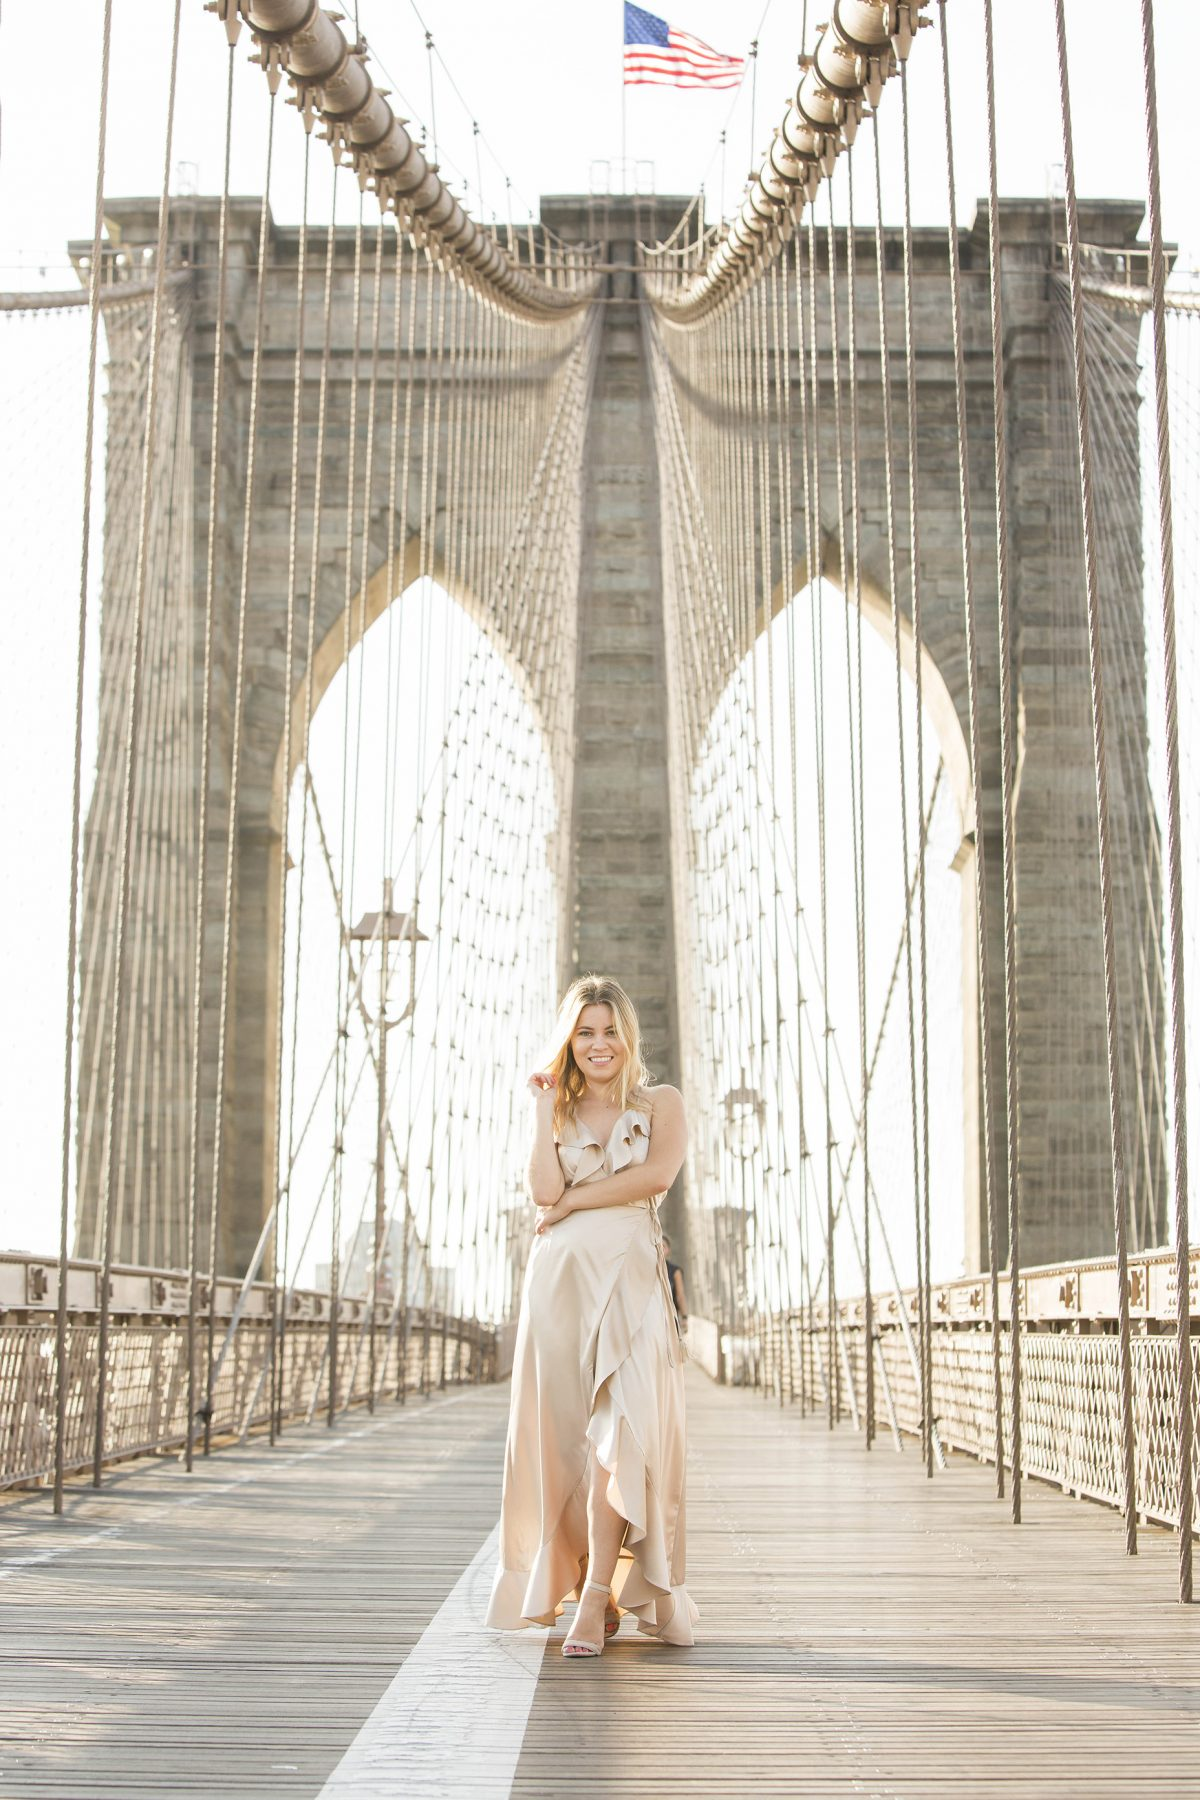 NYFW 2017 Brooklyn Bridge photo shoot